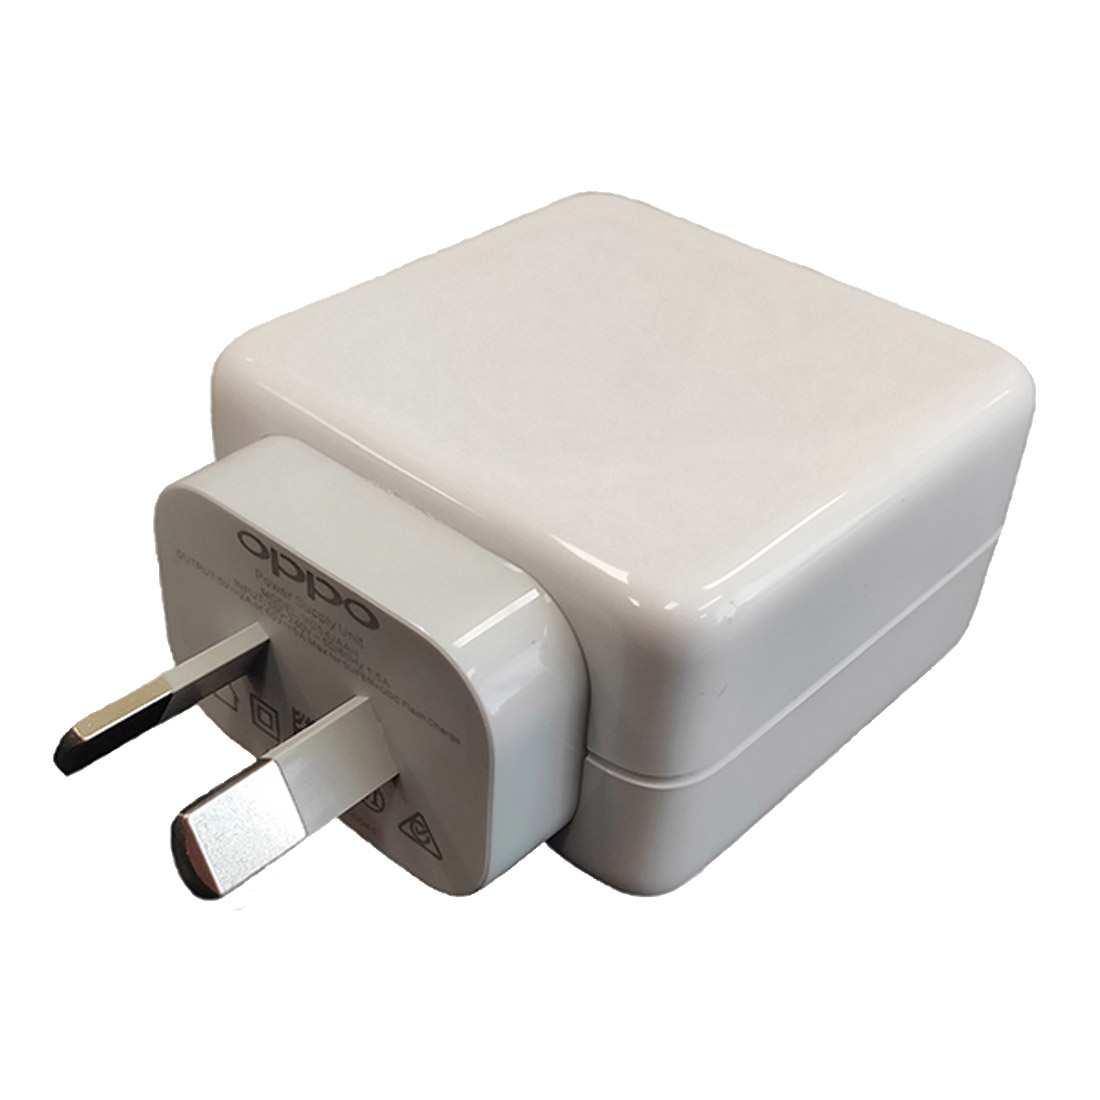 OPPO SuperVOOC 5A Flash Charger VCA5JAAH - White